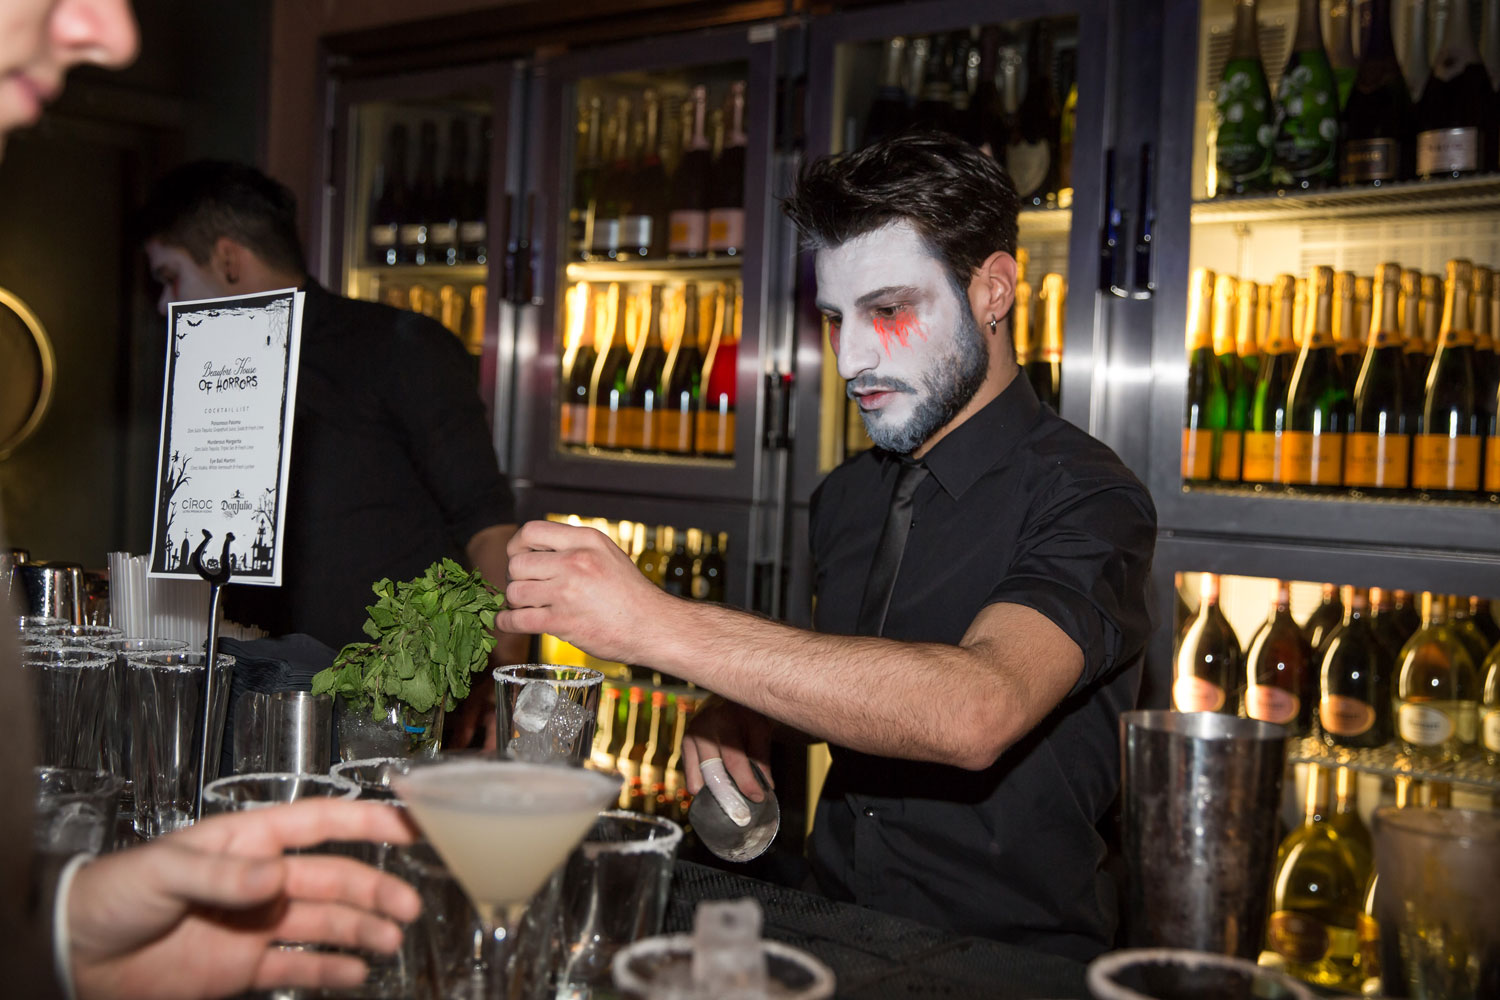 Chelsea's Beaufort House Gets a Spooktacular Makeover 7